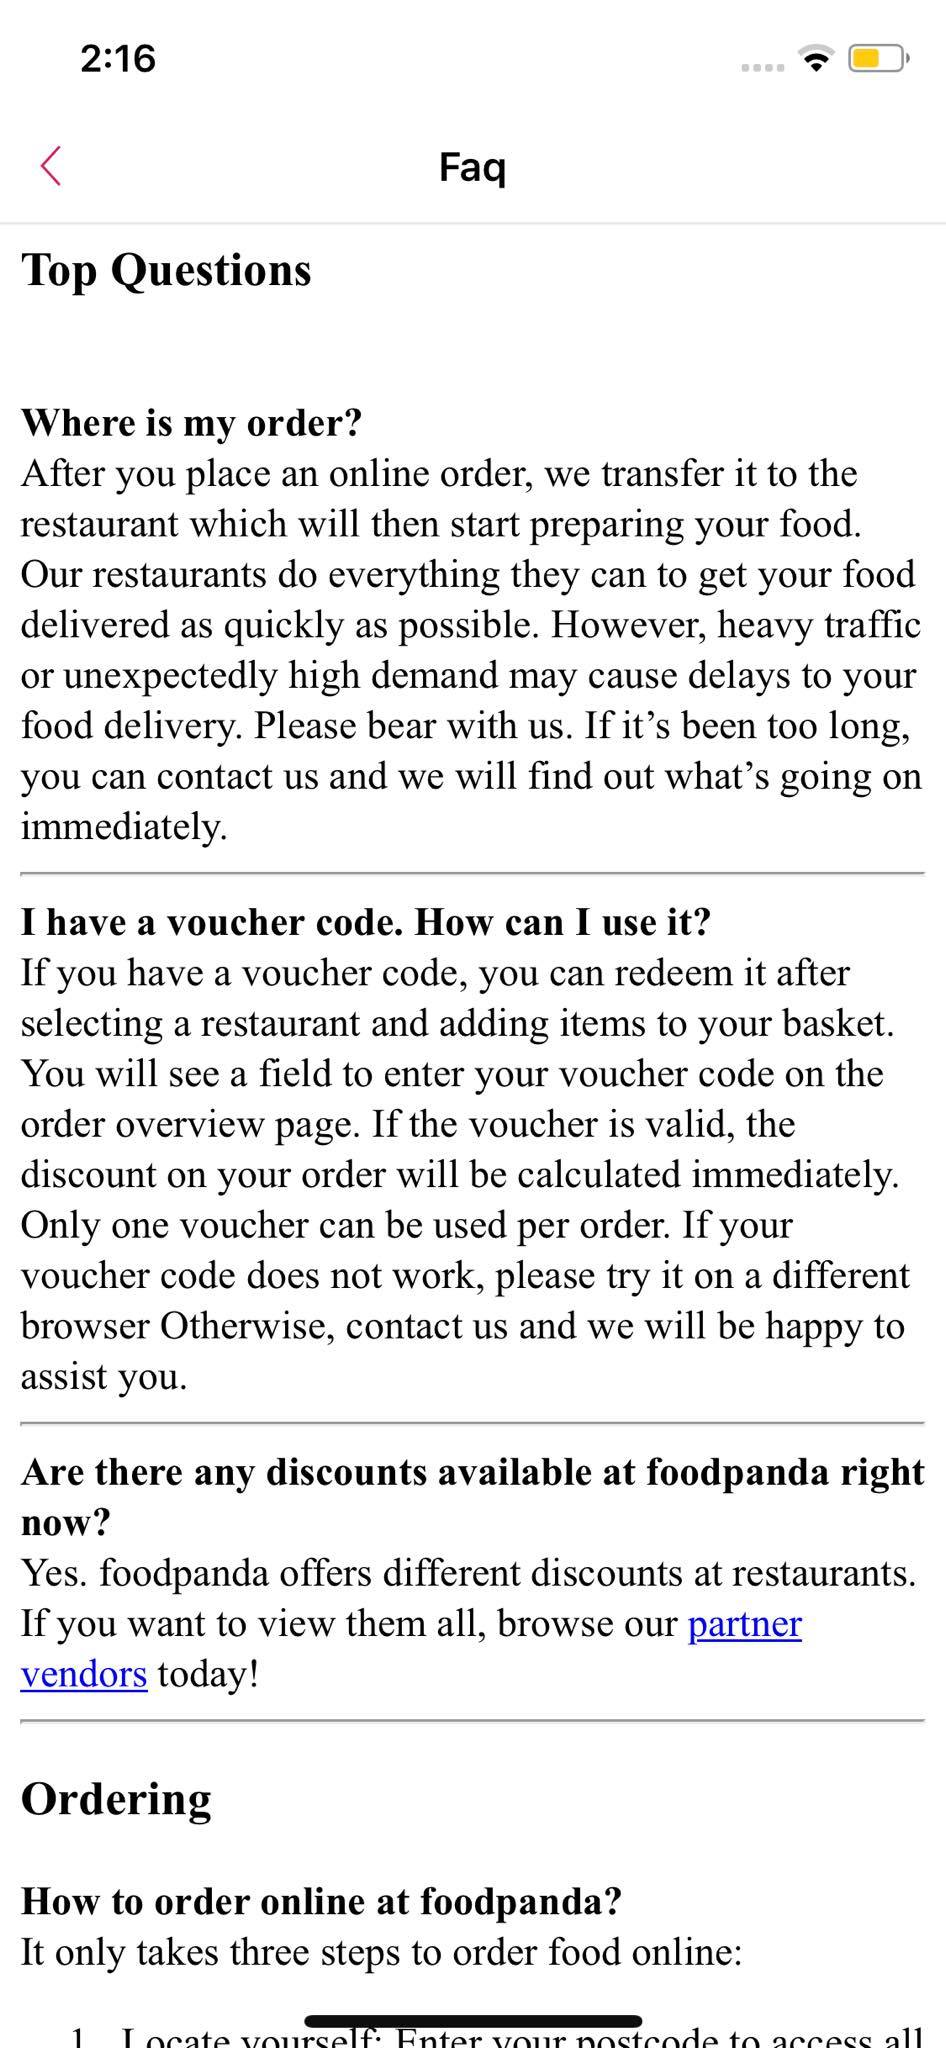 FAQ on iOS by Food Panda from UIGarage